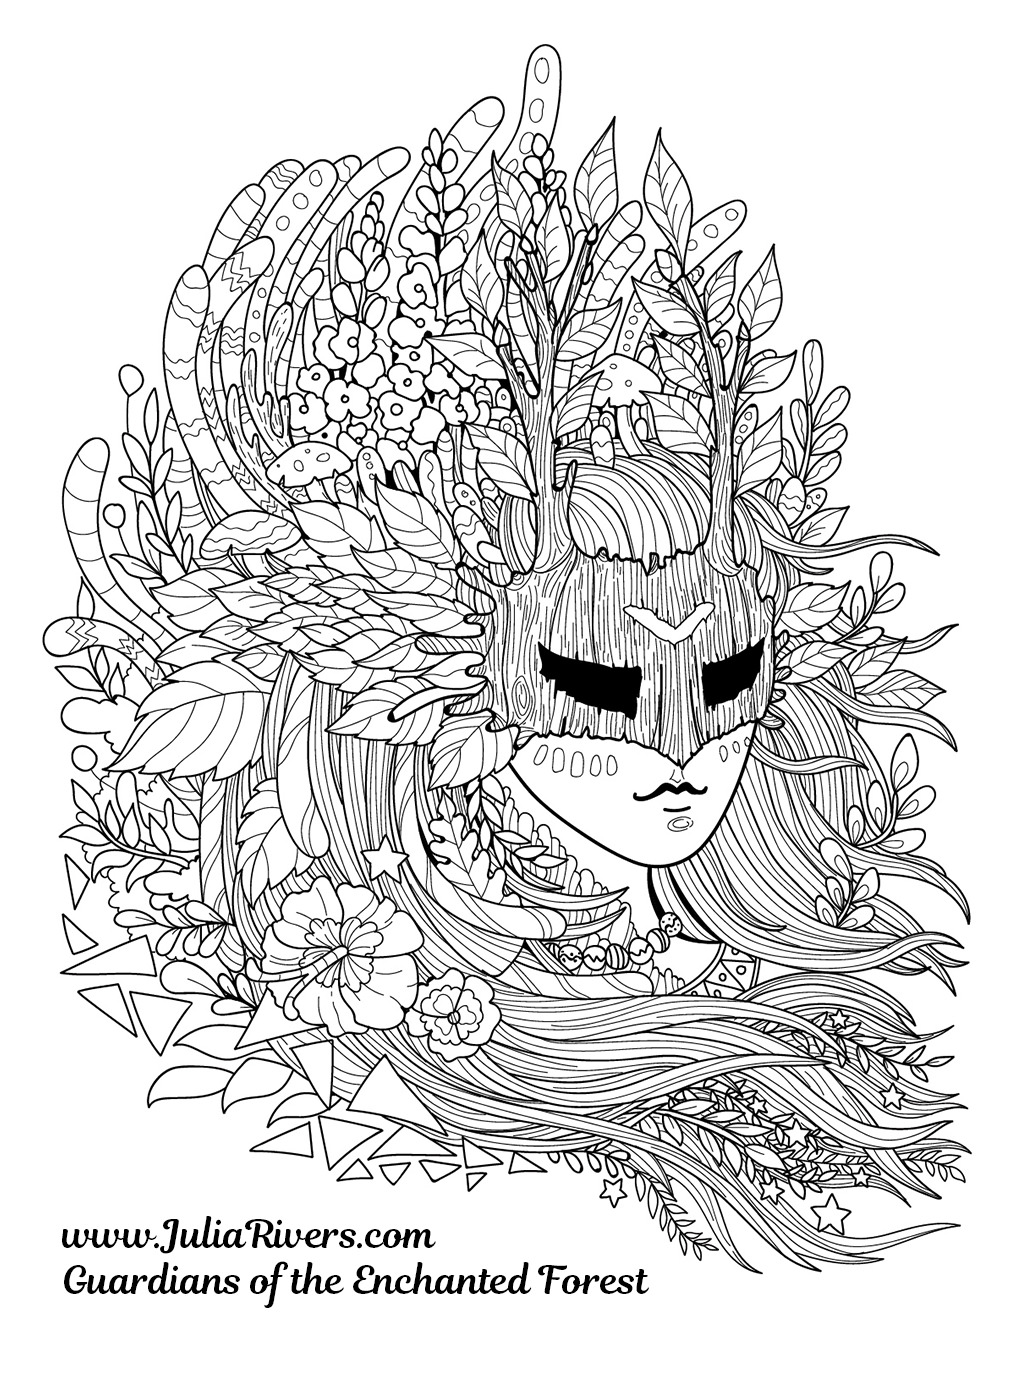 'Guardians of the Enchanted Forest' : Incredible coloring page of a masked creature, with hair full of flowers, leaves, mushrooms ...